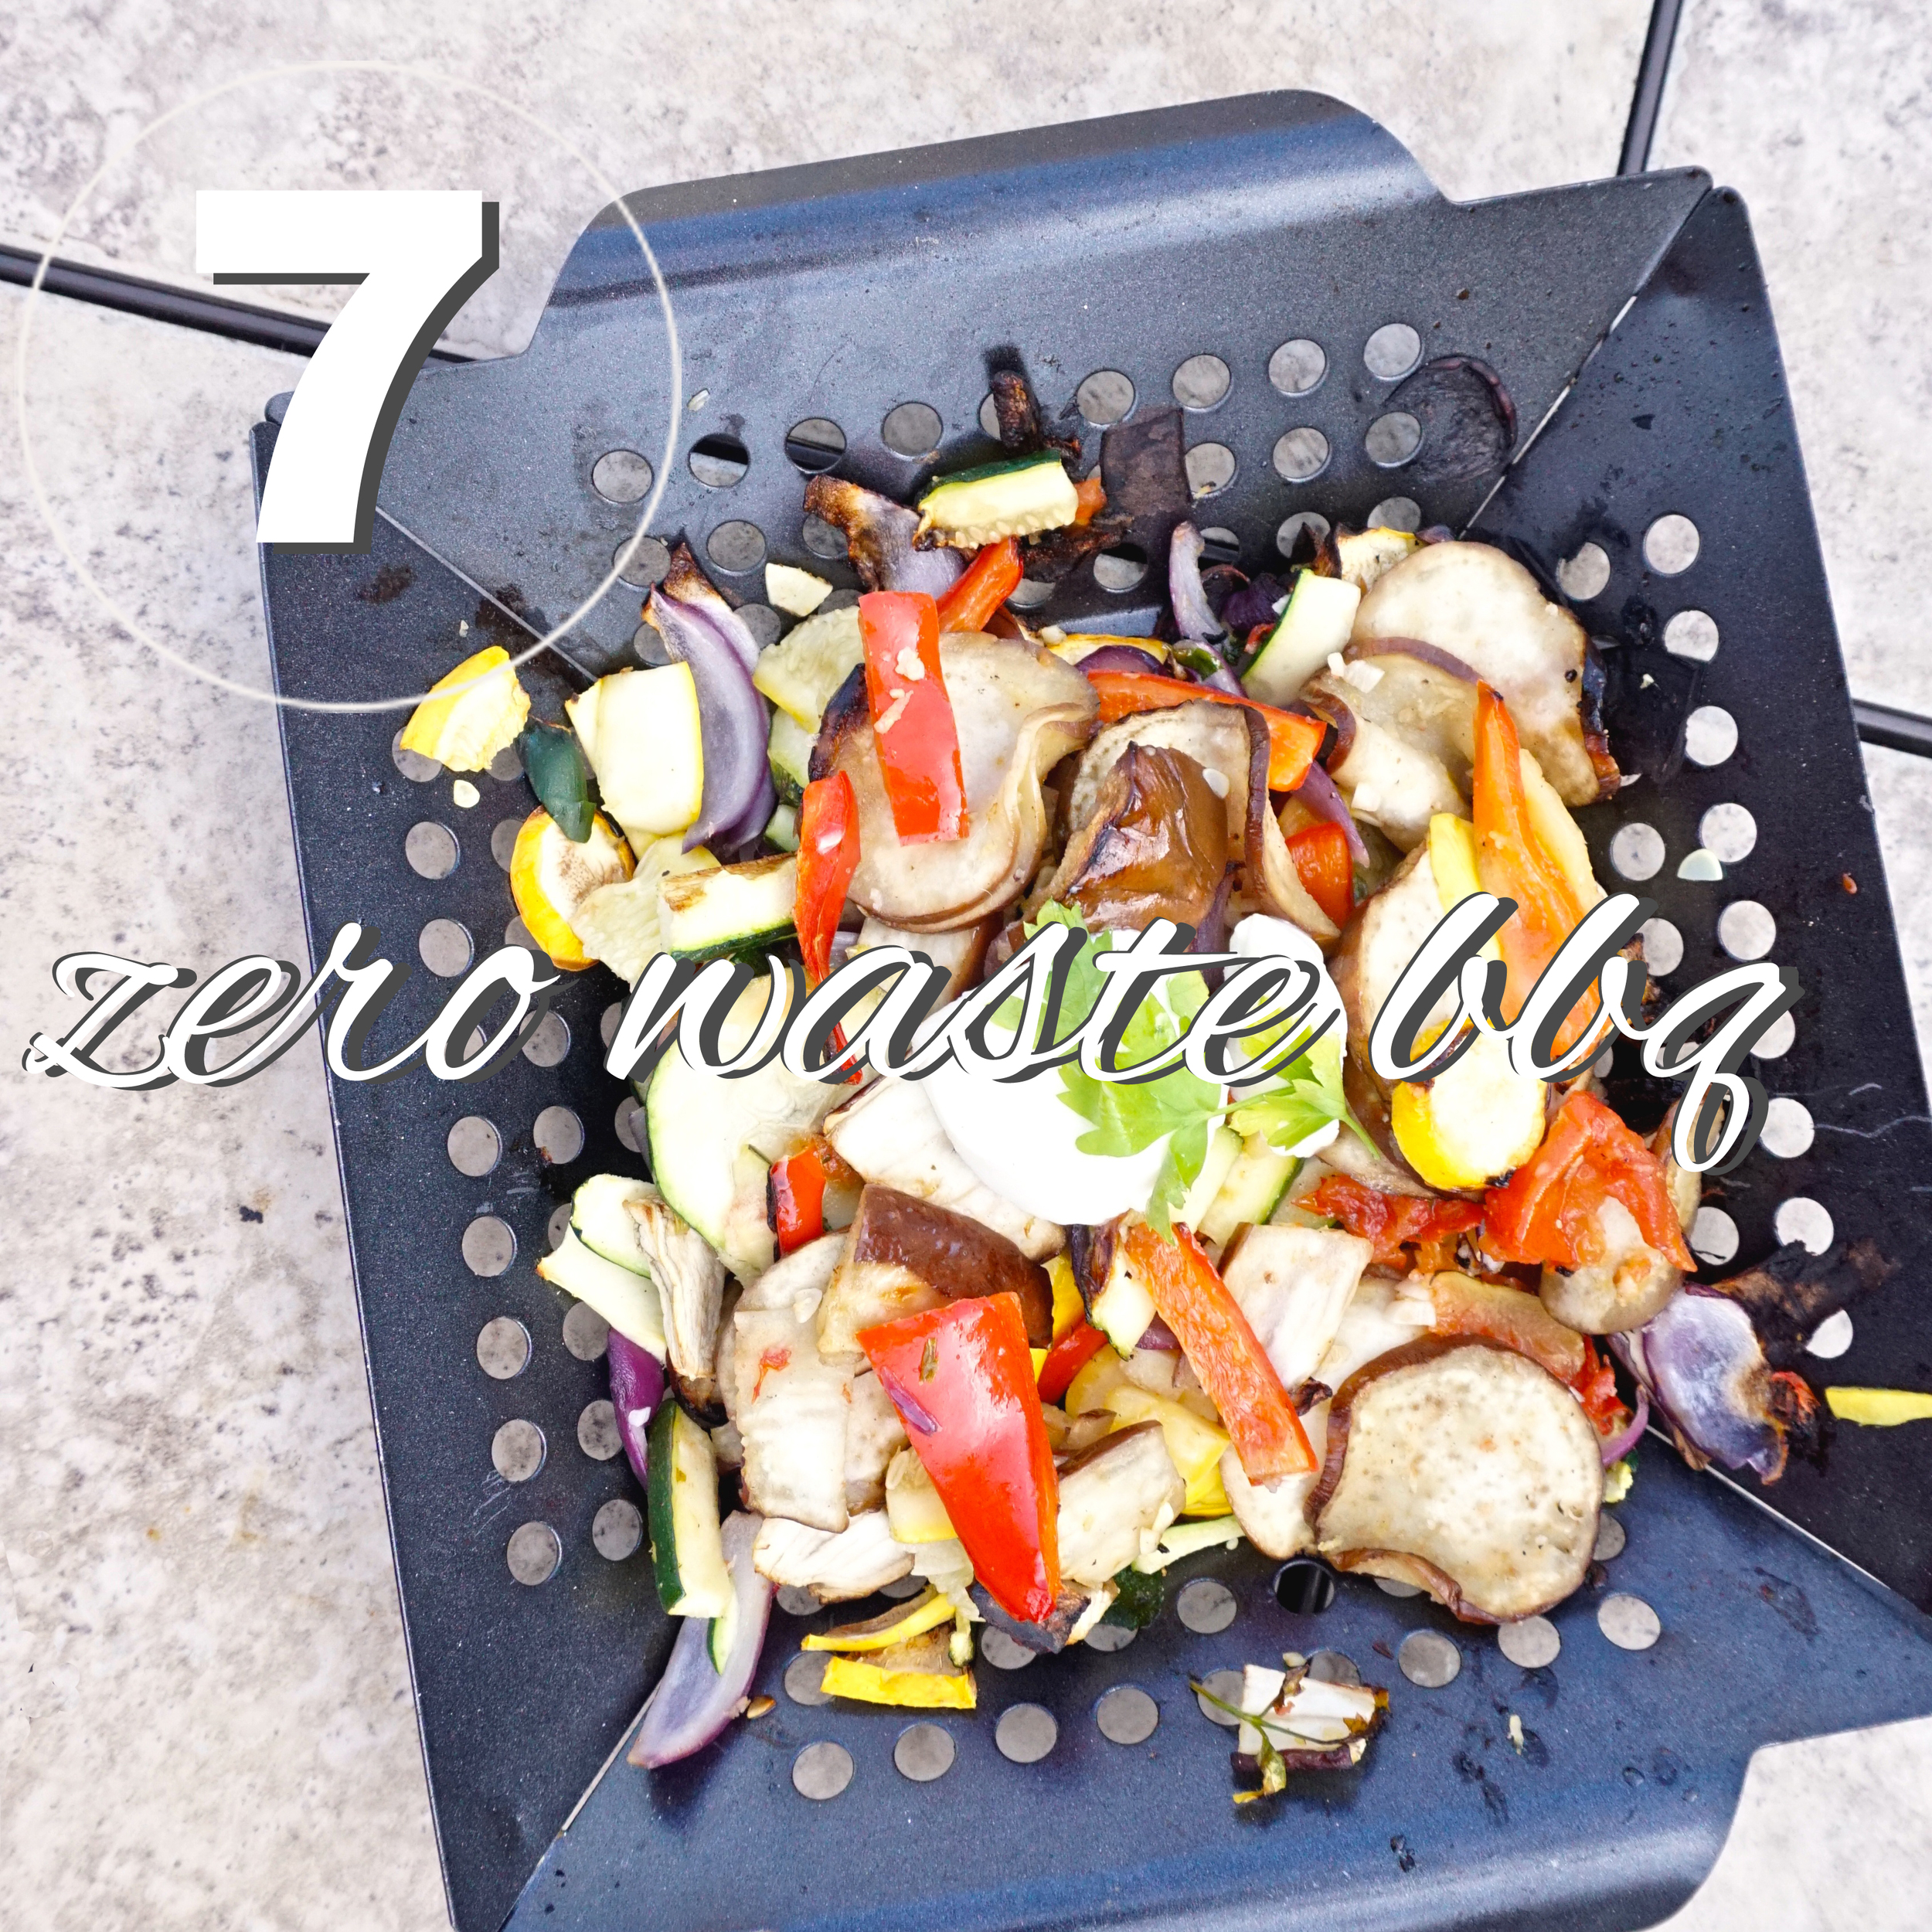 Day seven of the zero waste challenge! How to have a zero waste bbq for the summer.